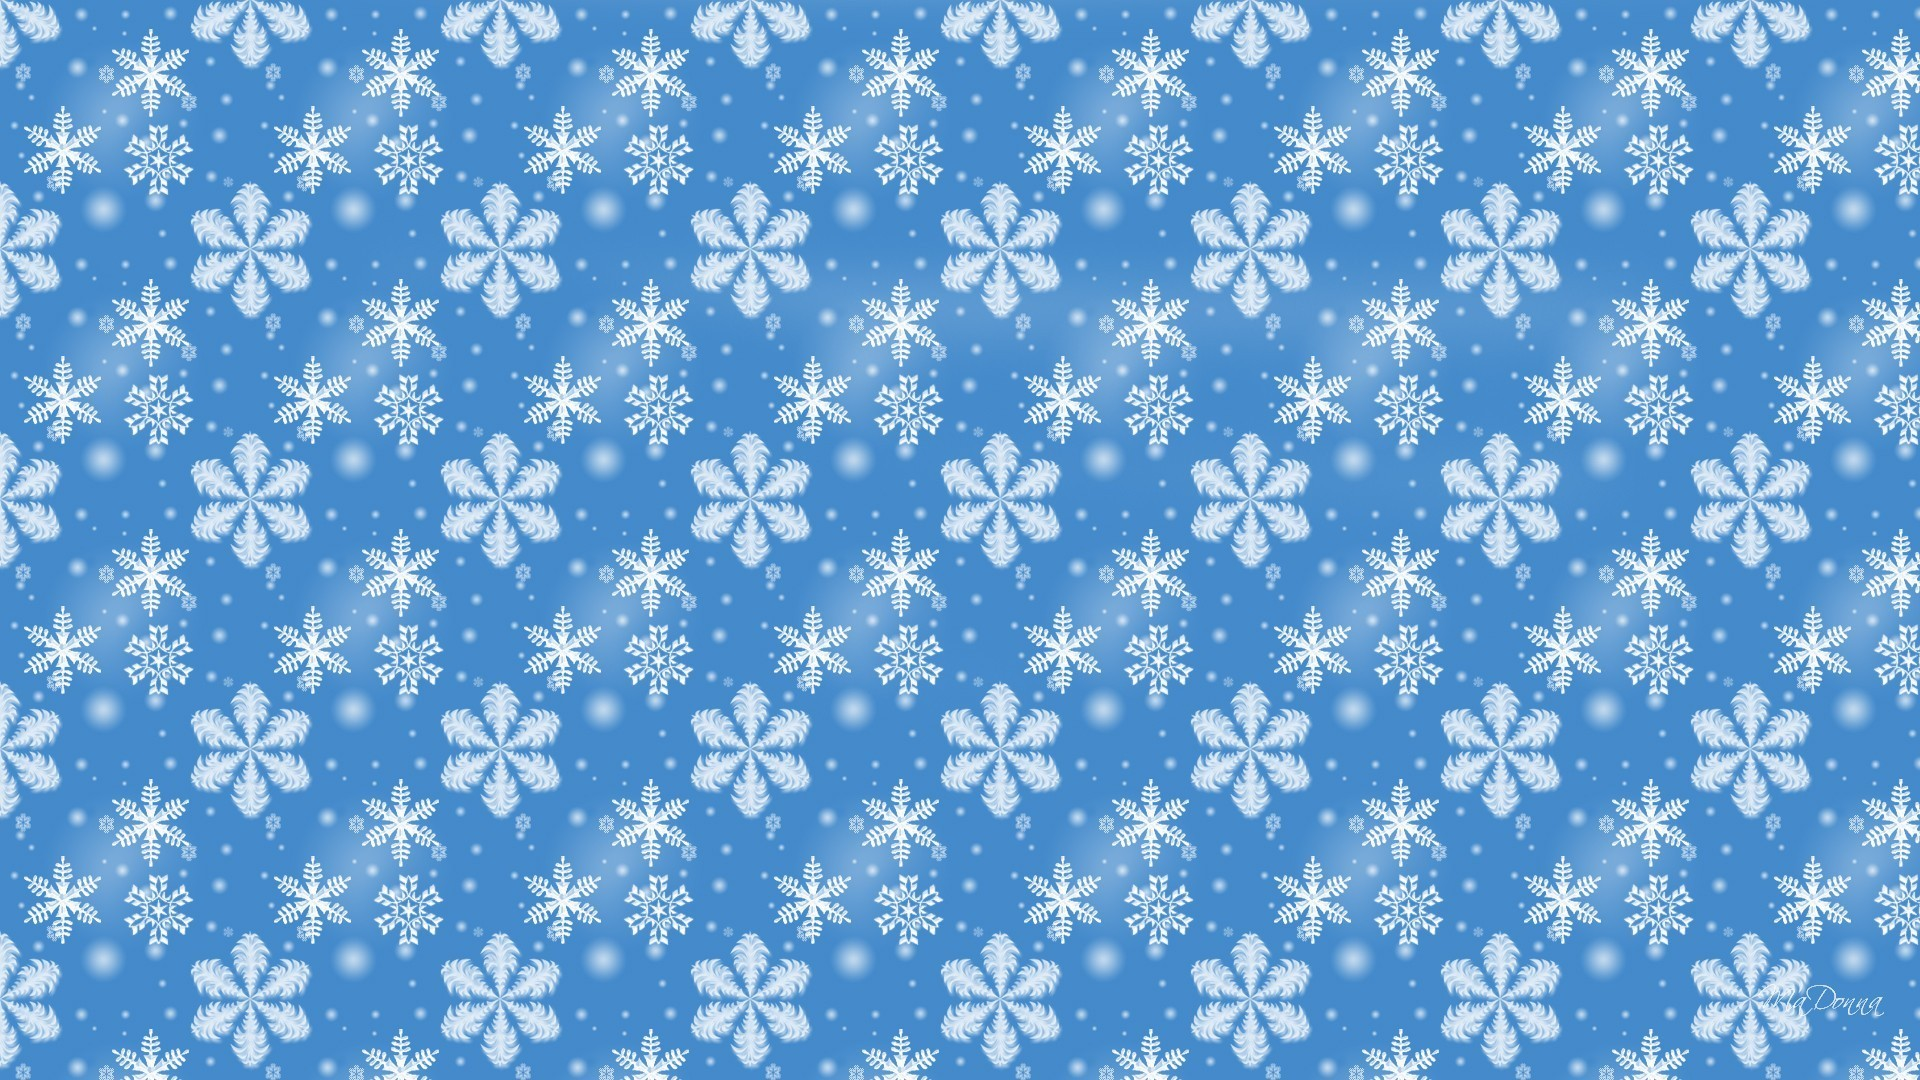 1920x1080 Blue Winter Snow Christmas Snowflakes Simple Frosty Wallpaper Backgrounds -